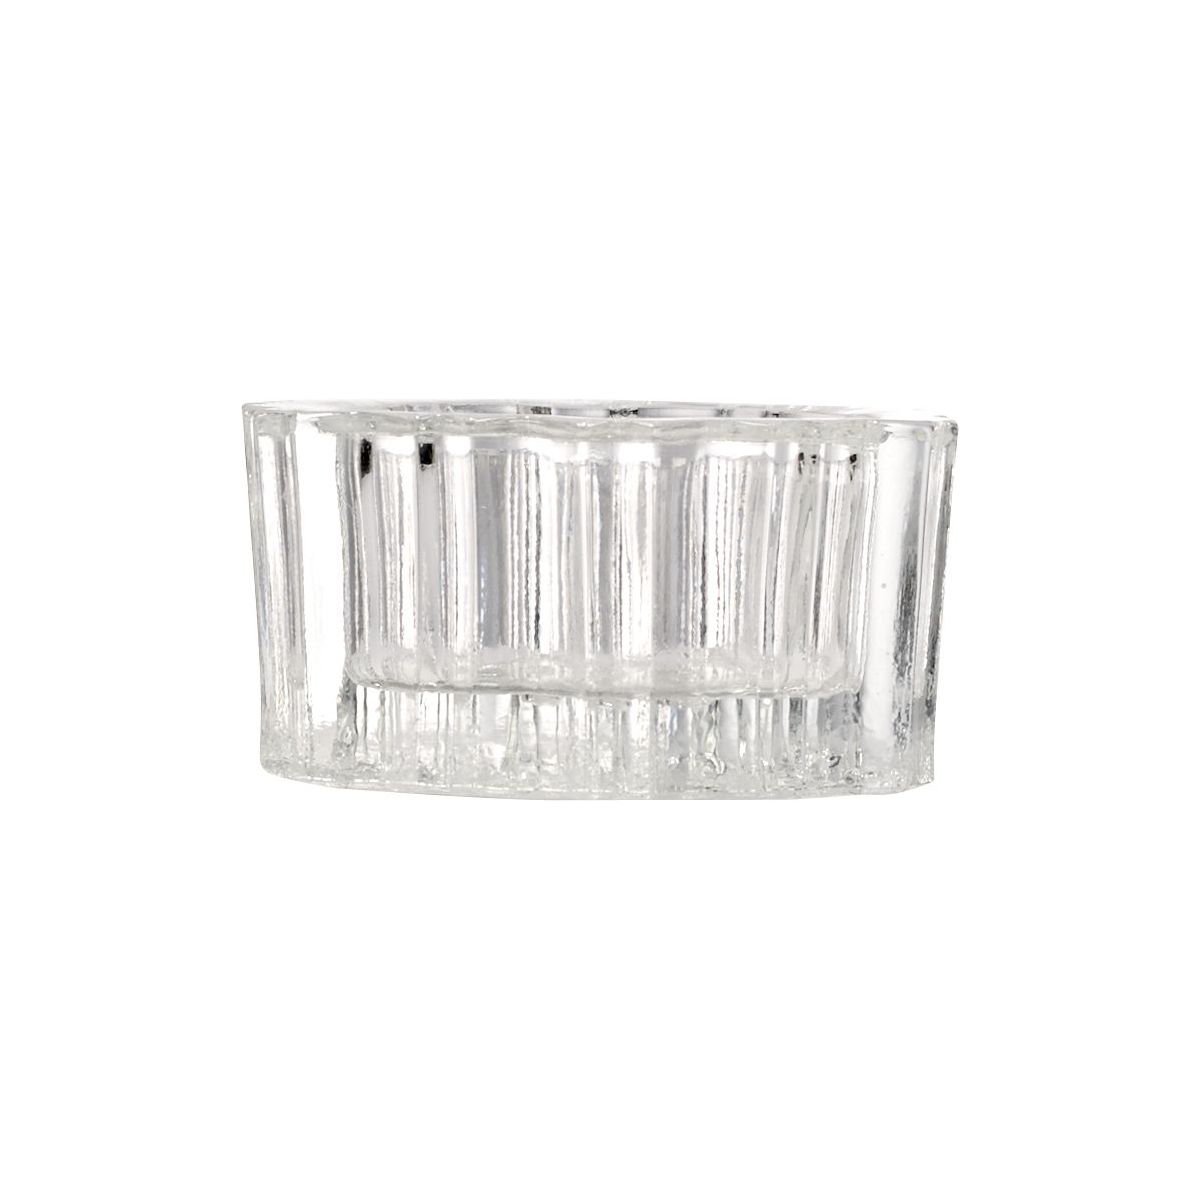 glass candle holders x6 n°2